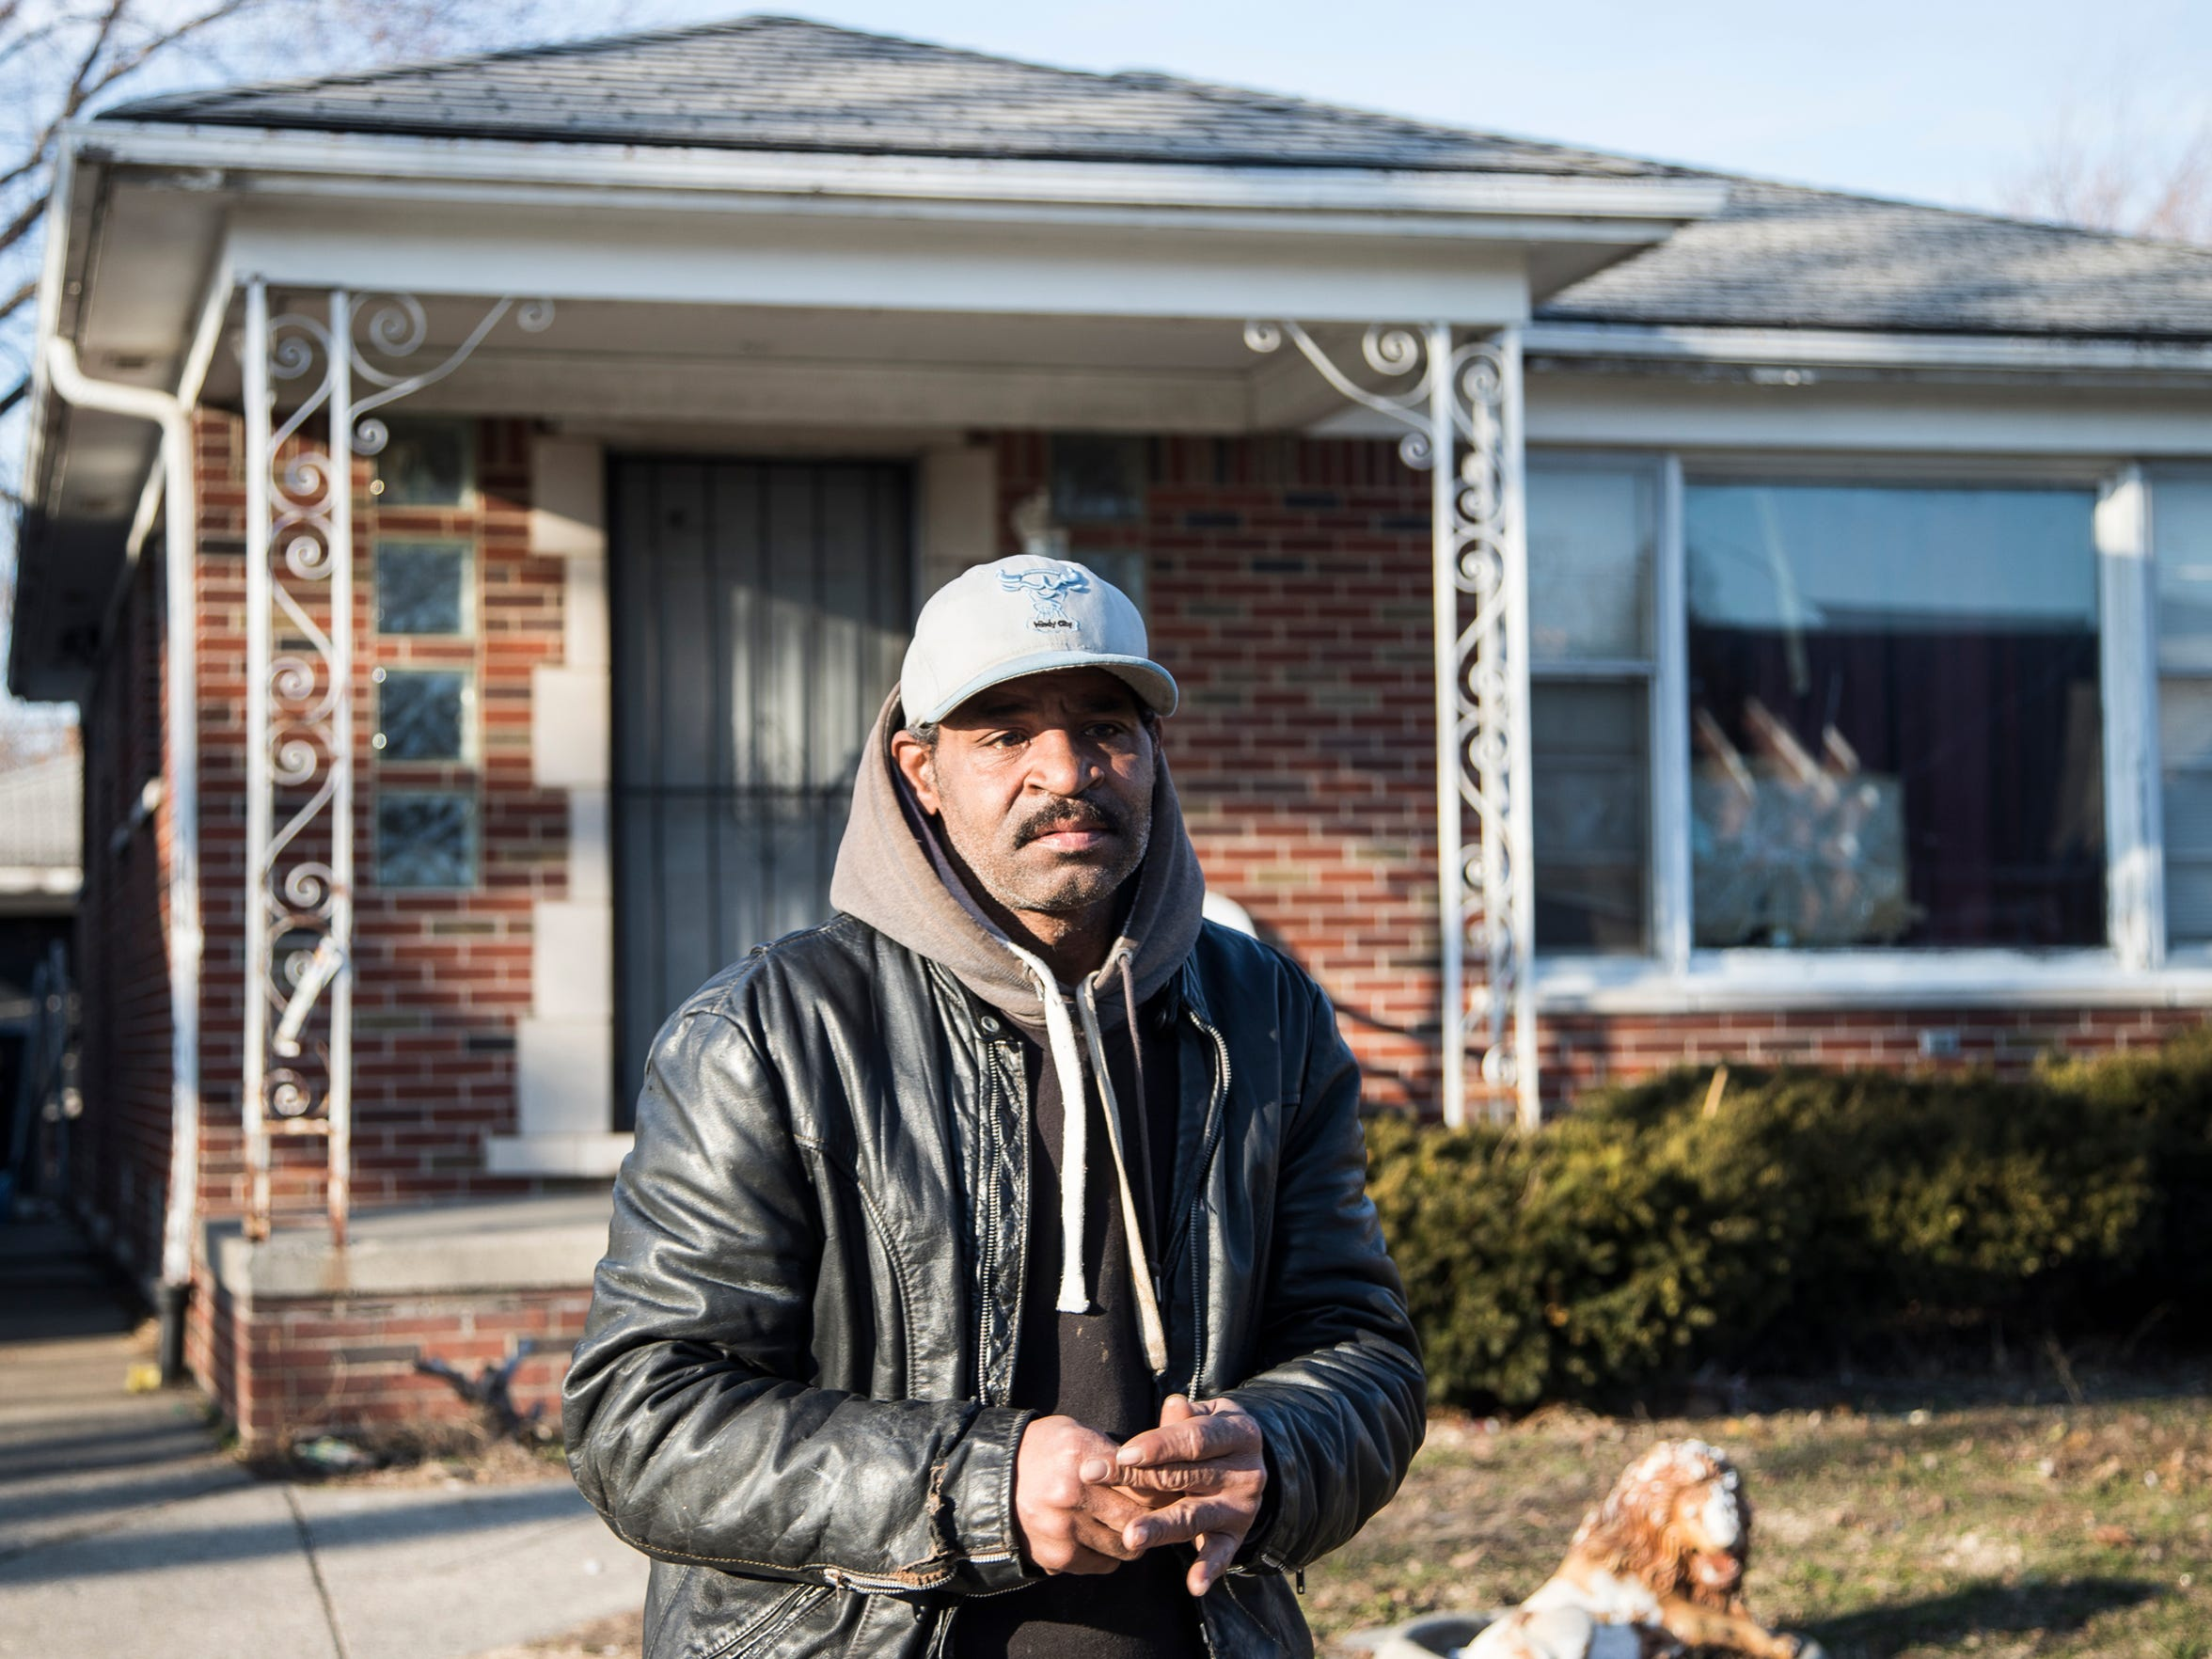 Reginal Murphy in front of the home he occupies on Fairmount Drive in Detroit, Tuesday, February 27, 2018.